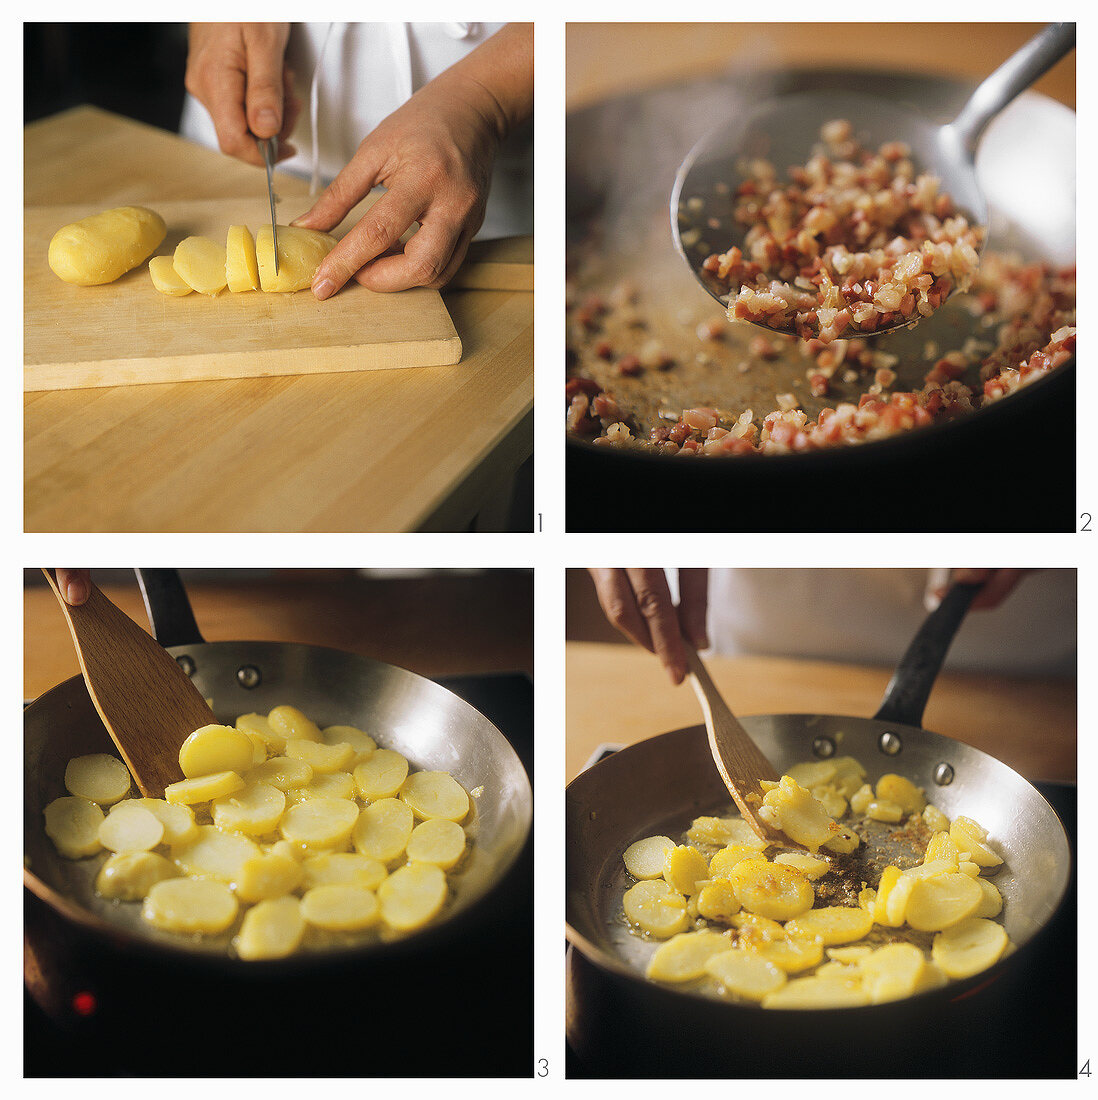 Preparing fried potatoes with bacon